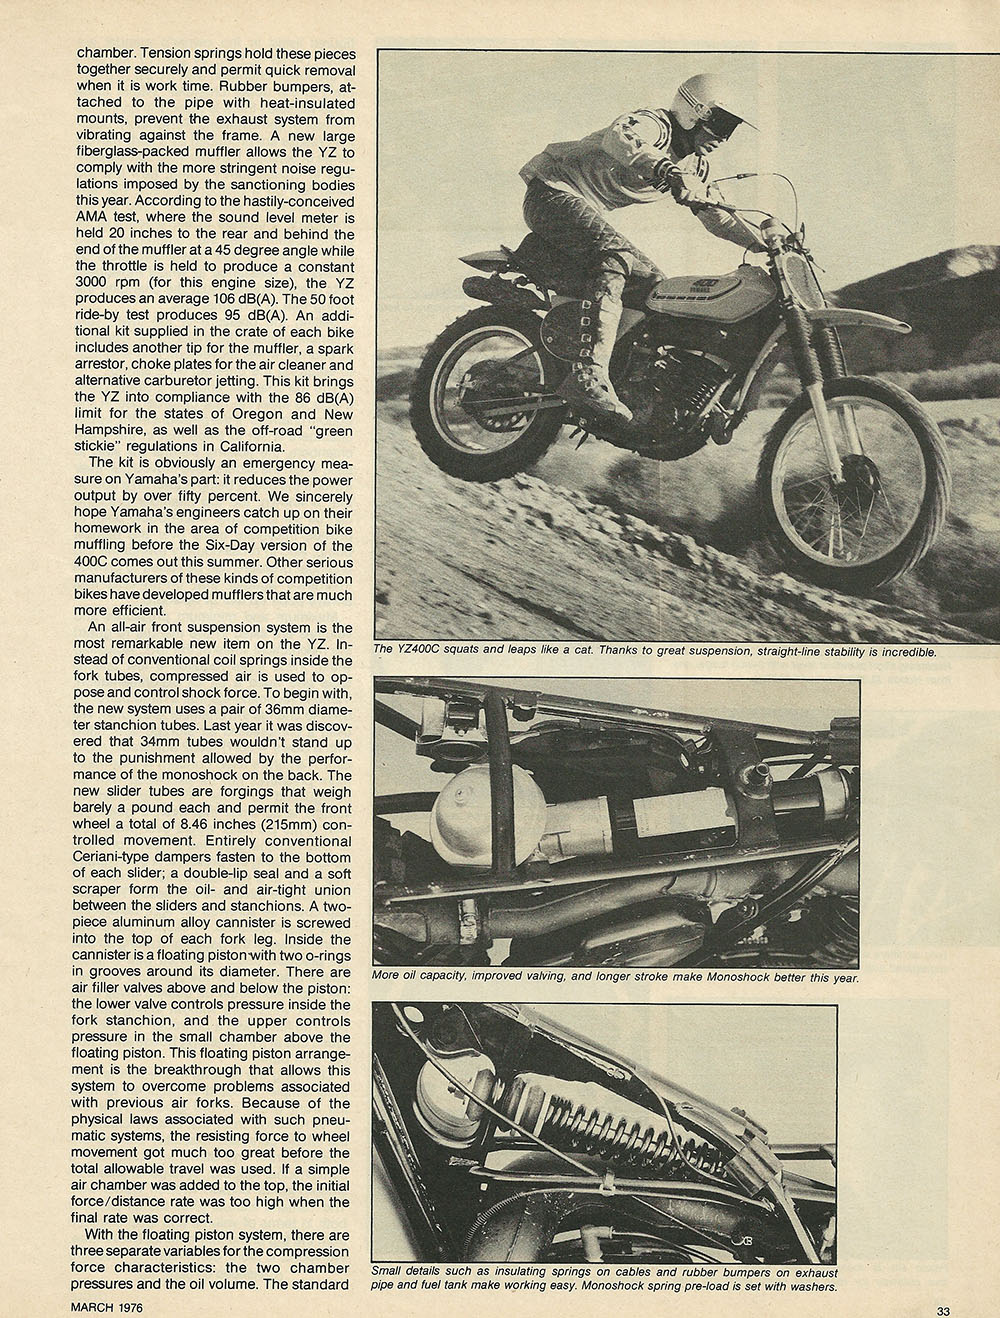 1976 Yamaha YZ400C off road test 4.JPG